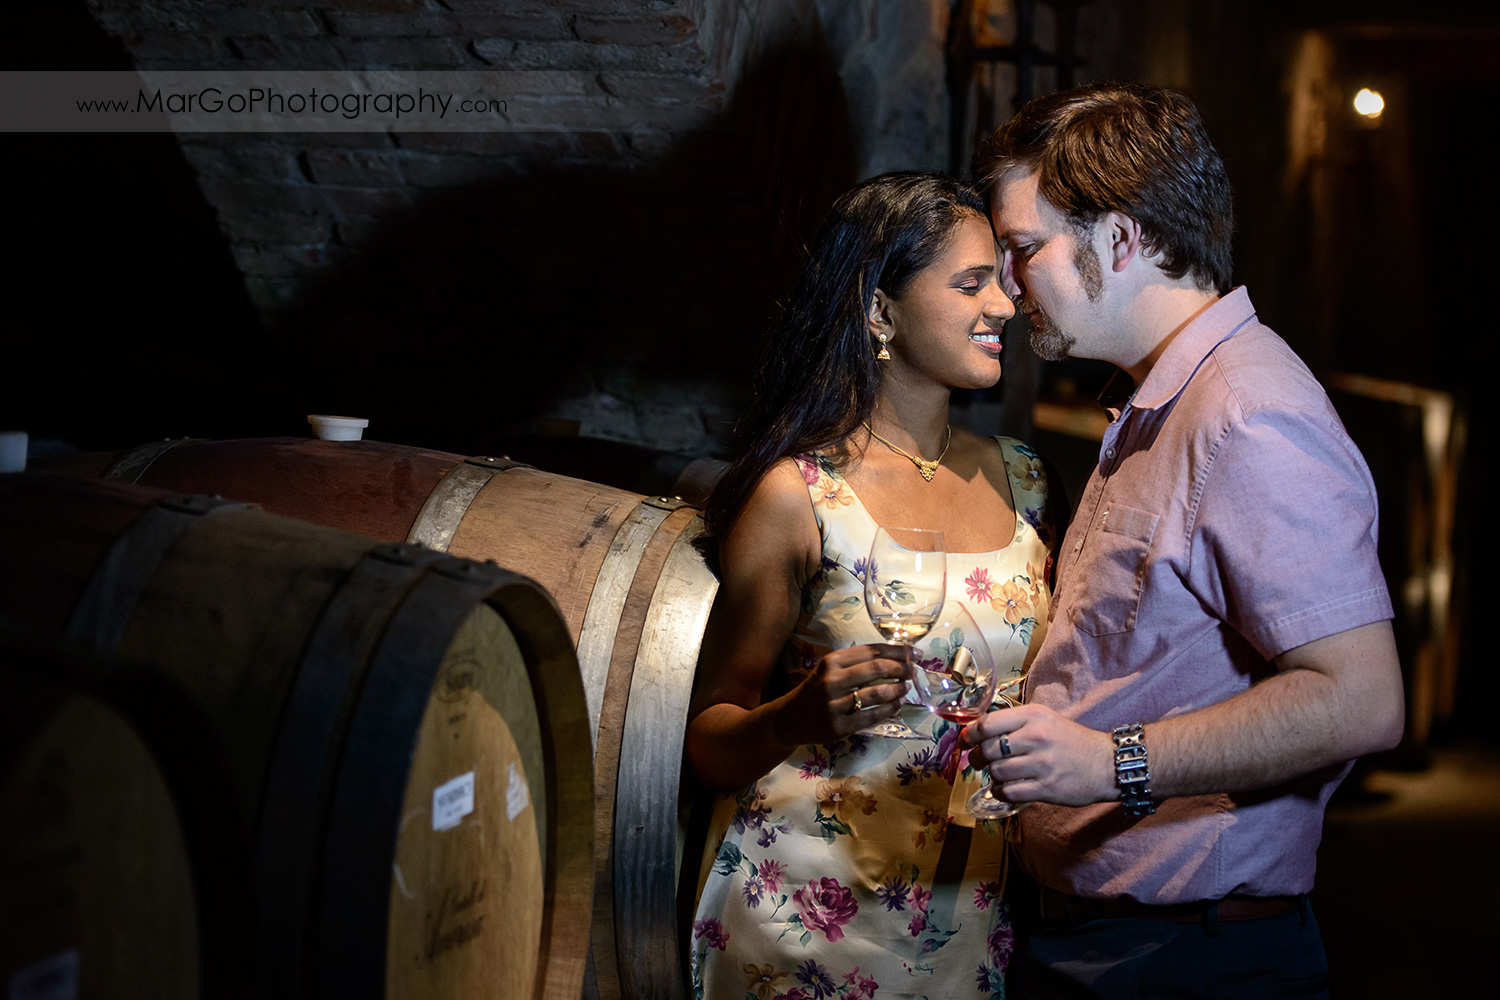 man in pink shirt and Indian woman in flower dress holding wine glasses in the wine cellar during engagement session at Castello di Amorosa in Calistoga